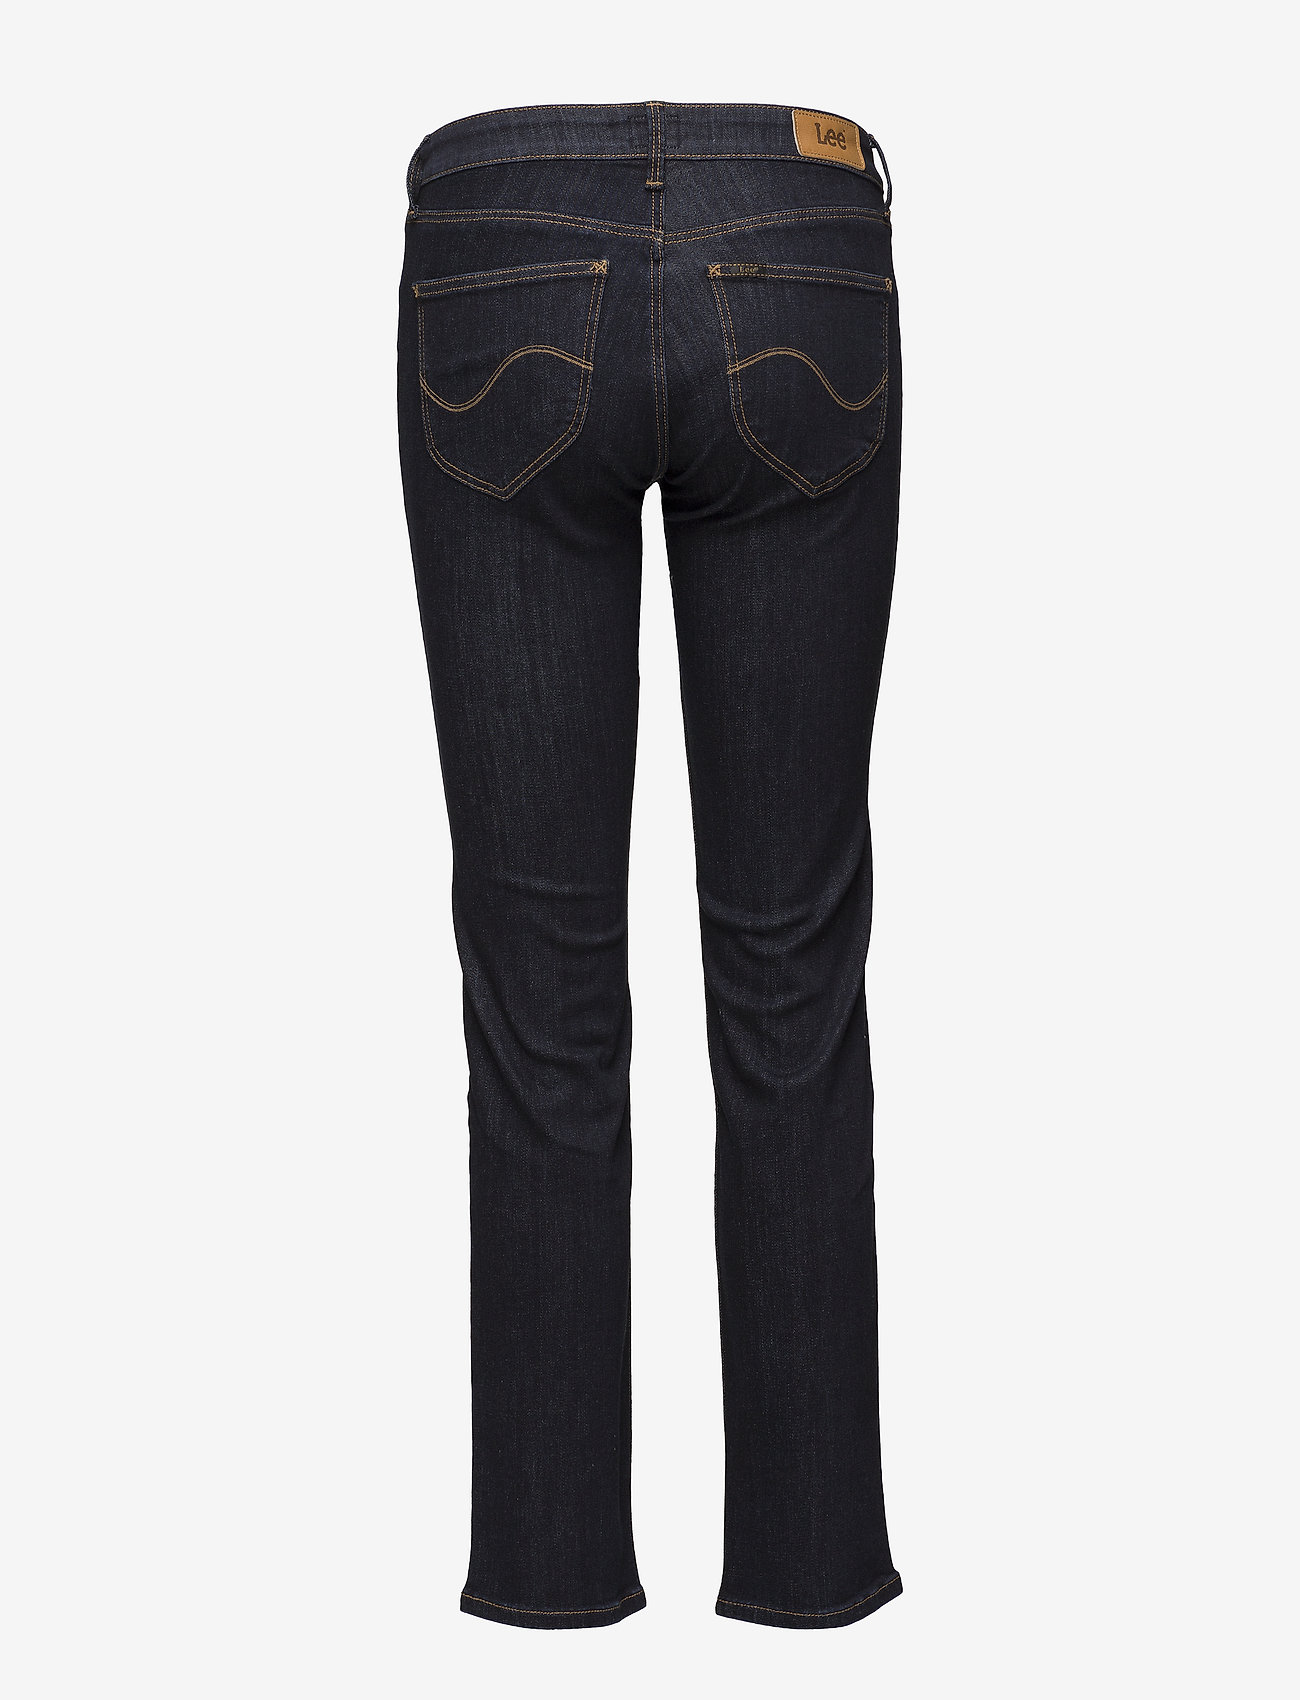 Lee Jeans - MARION STRAIGHT - straight jeans - one wash - 1